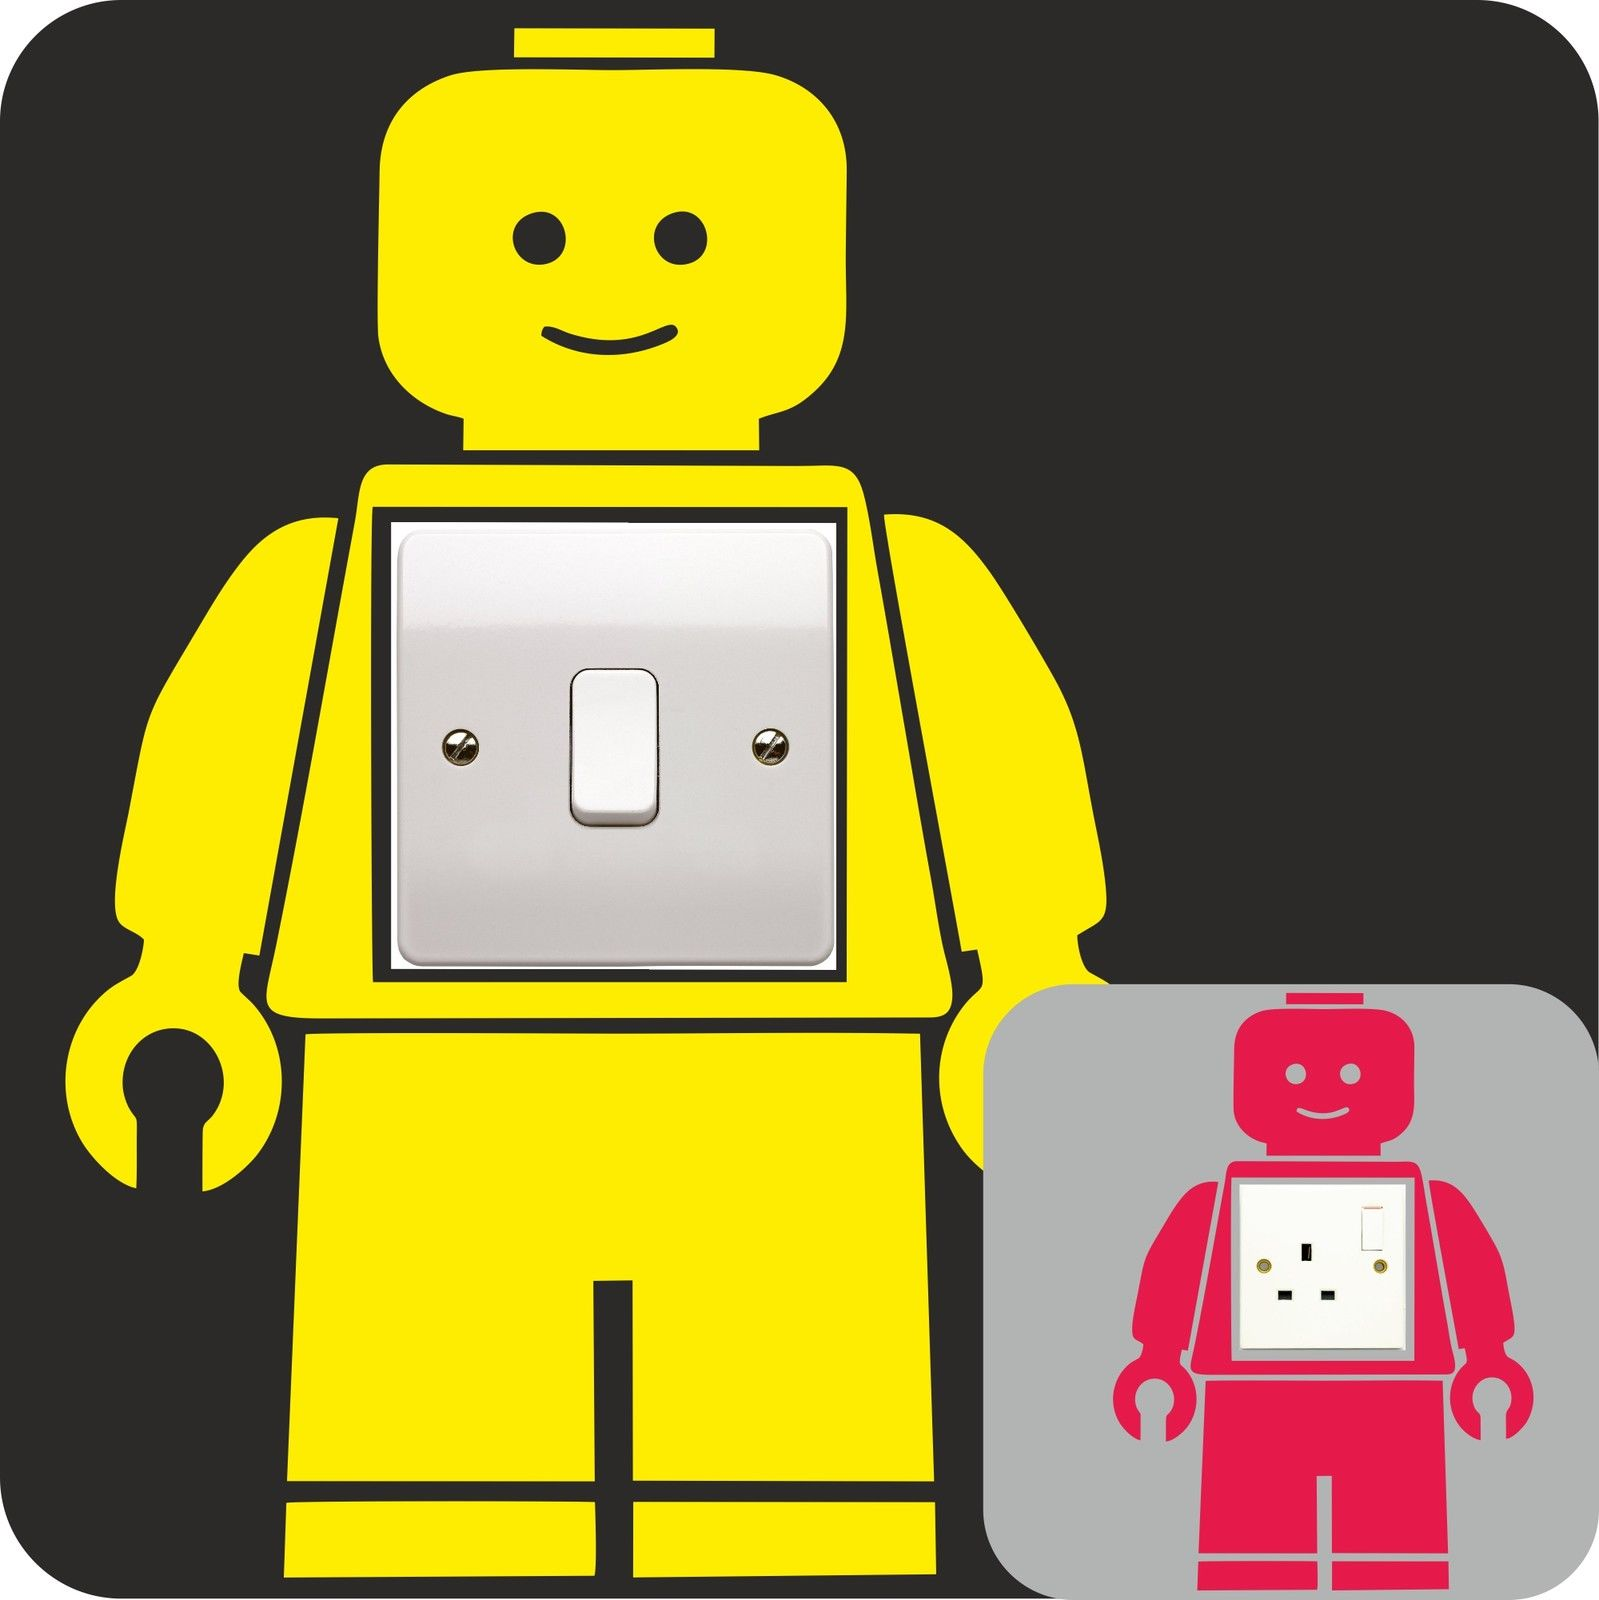 LEGO MAN vinyl decal LIGHT SWITCH PLUG SURROUND bedroom WALL sticker ART QUOTE kids bedroom DECOR(China (Mainland))